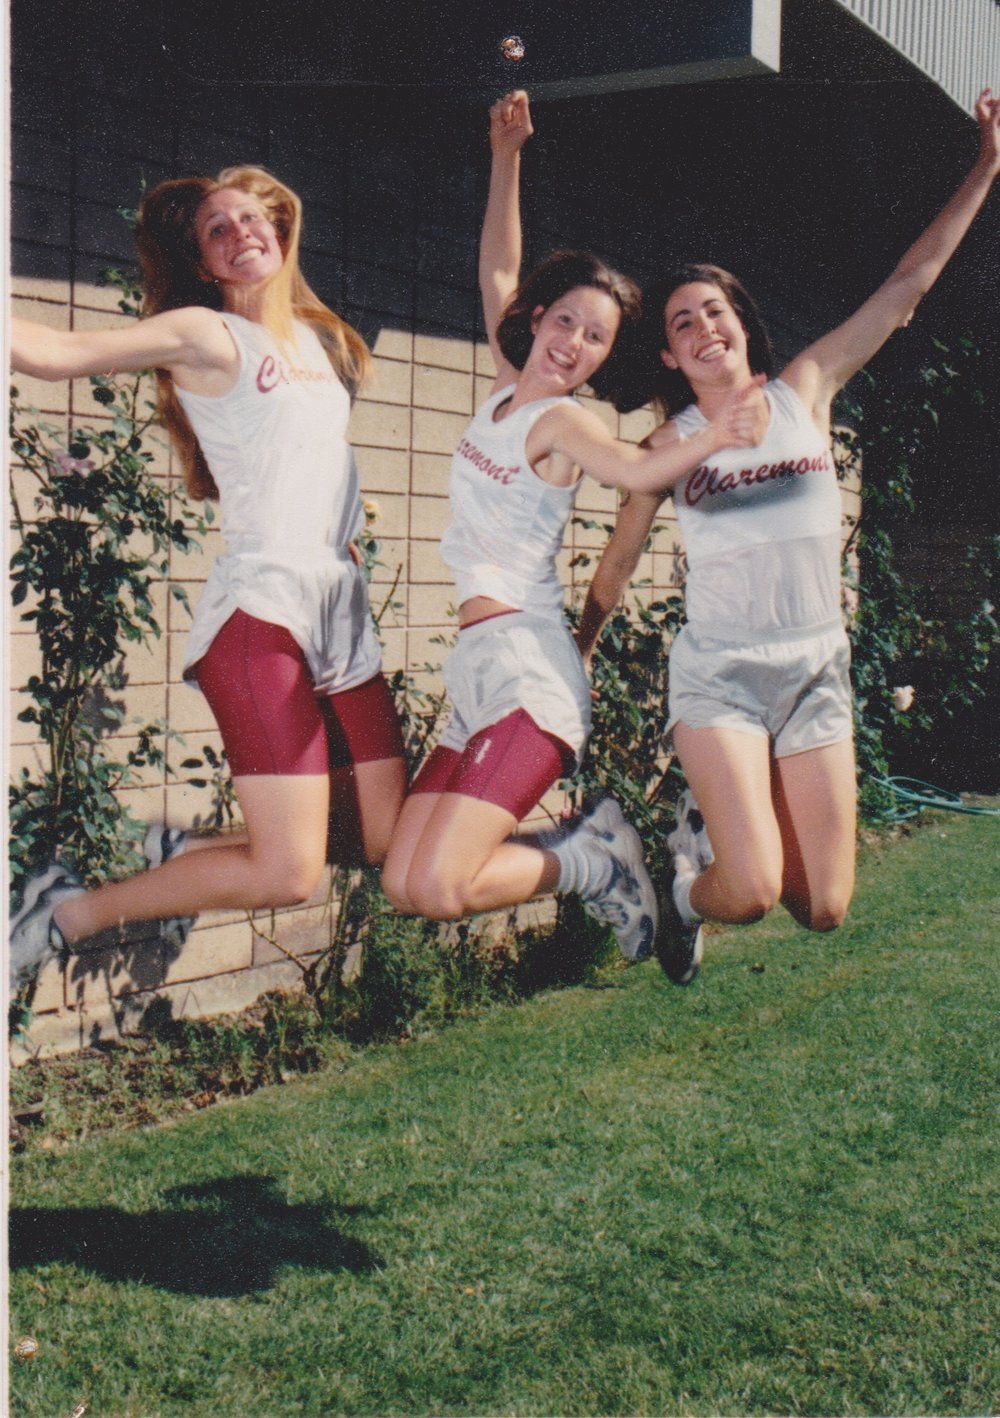 One of the many epic photos circa 1997 with my two best friends, Emily Tweten and Hadara Katarski.